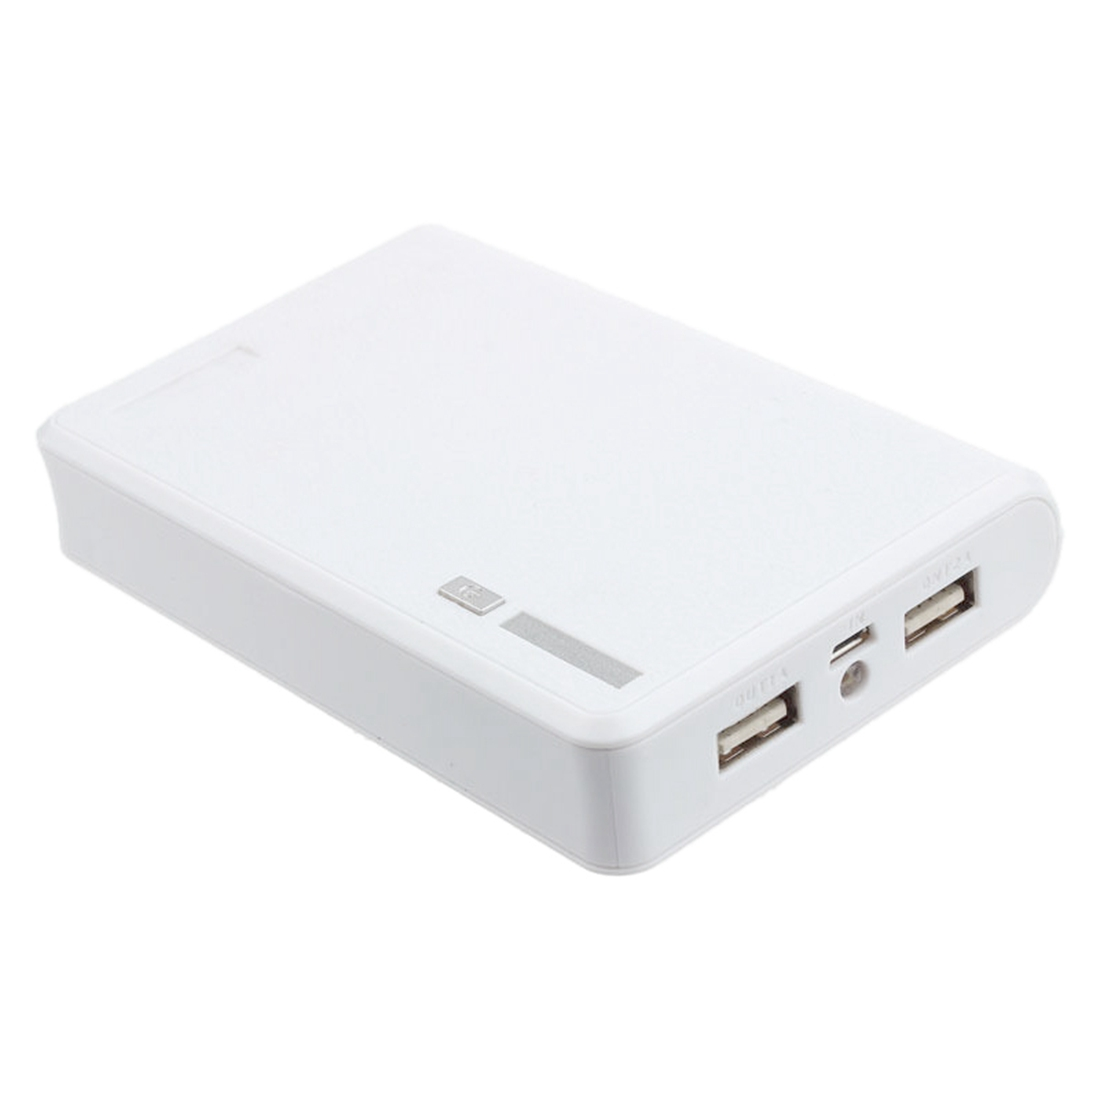 Portable USB Charger 5V 2A 18650 Power Bank Battery Box For iphone6 Smartphone ...